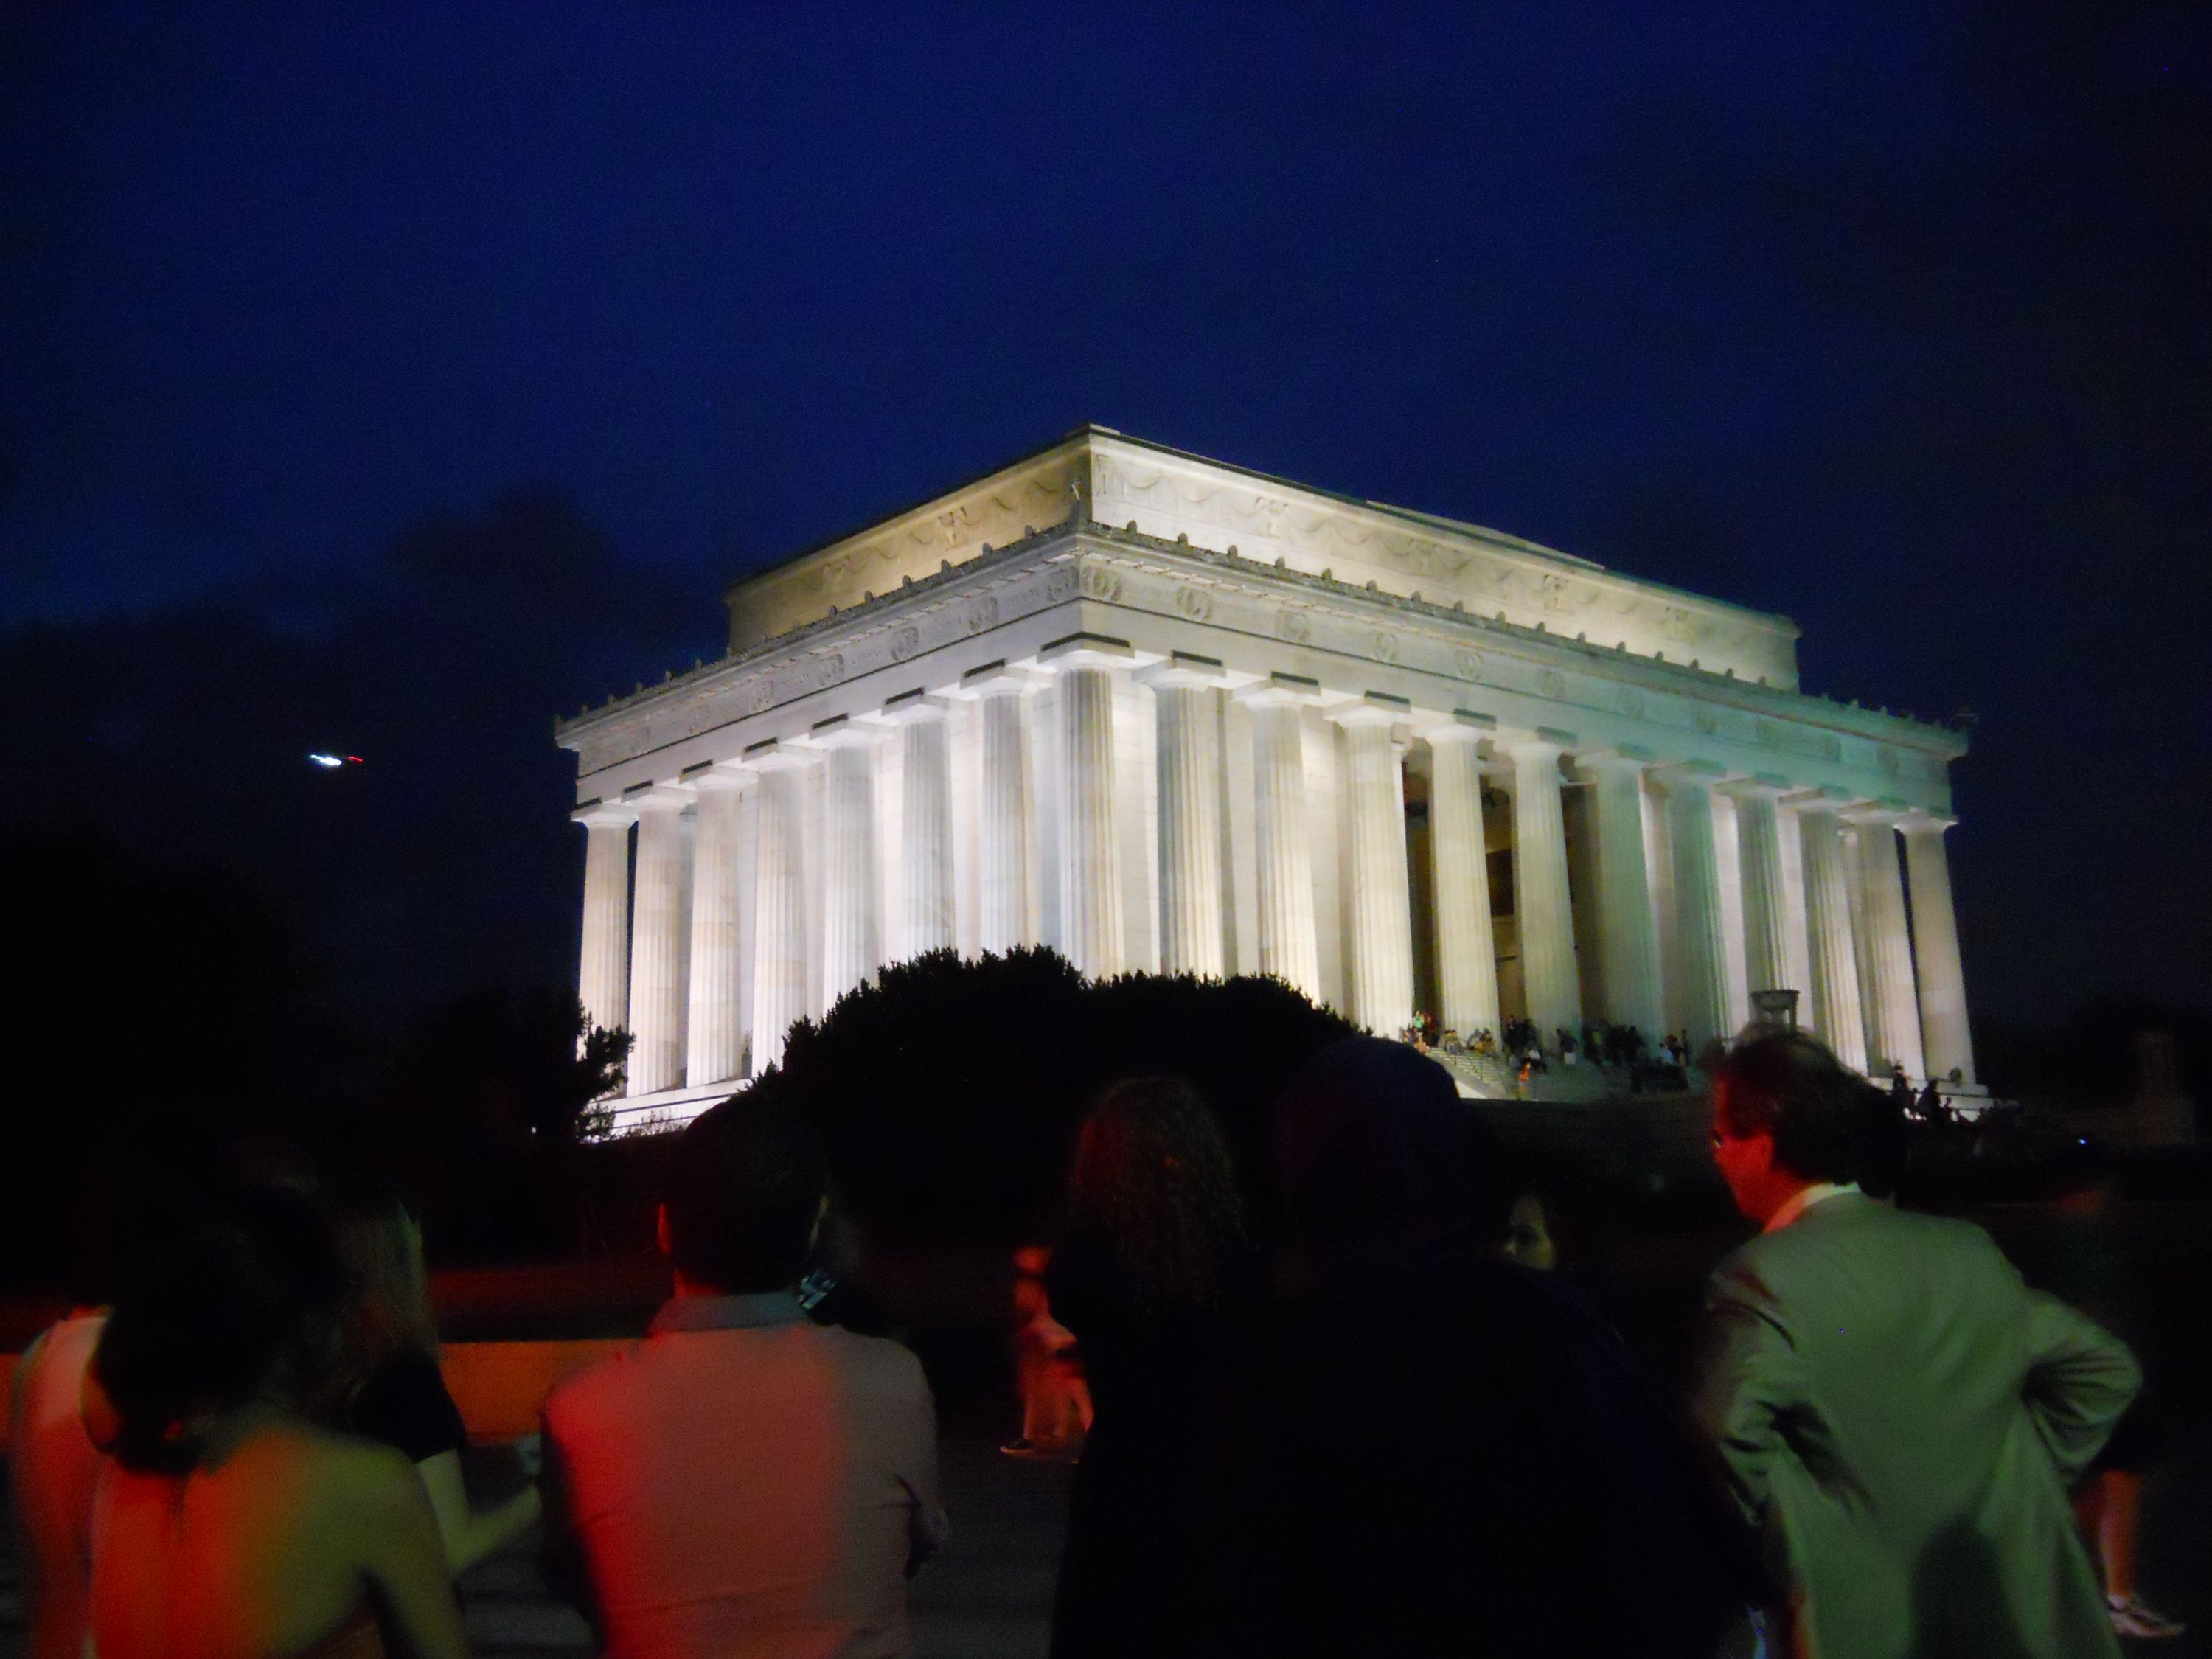 Night Tour of the Monuments